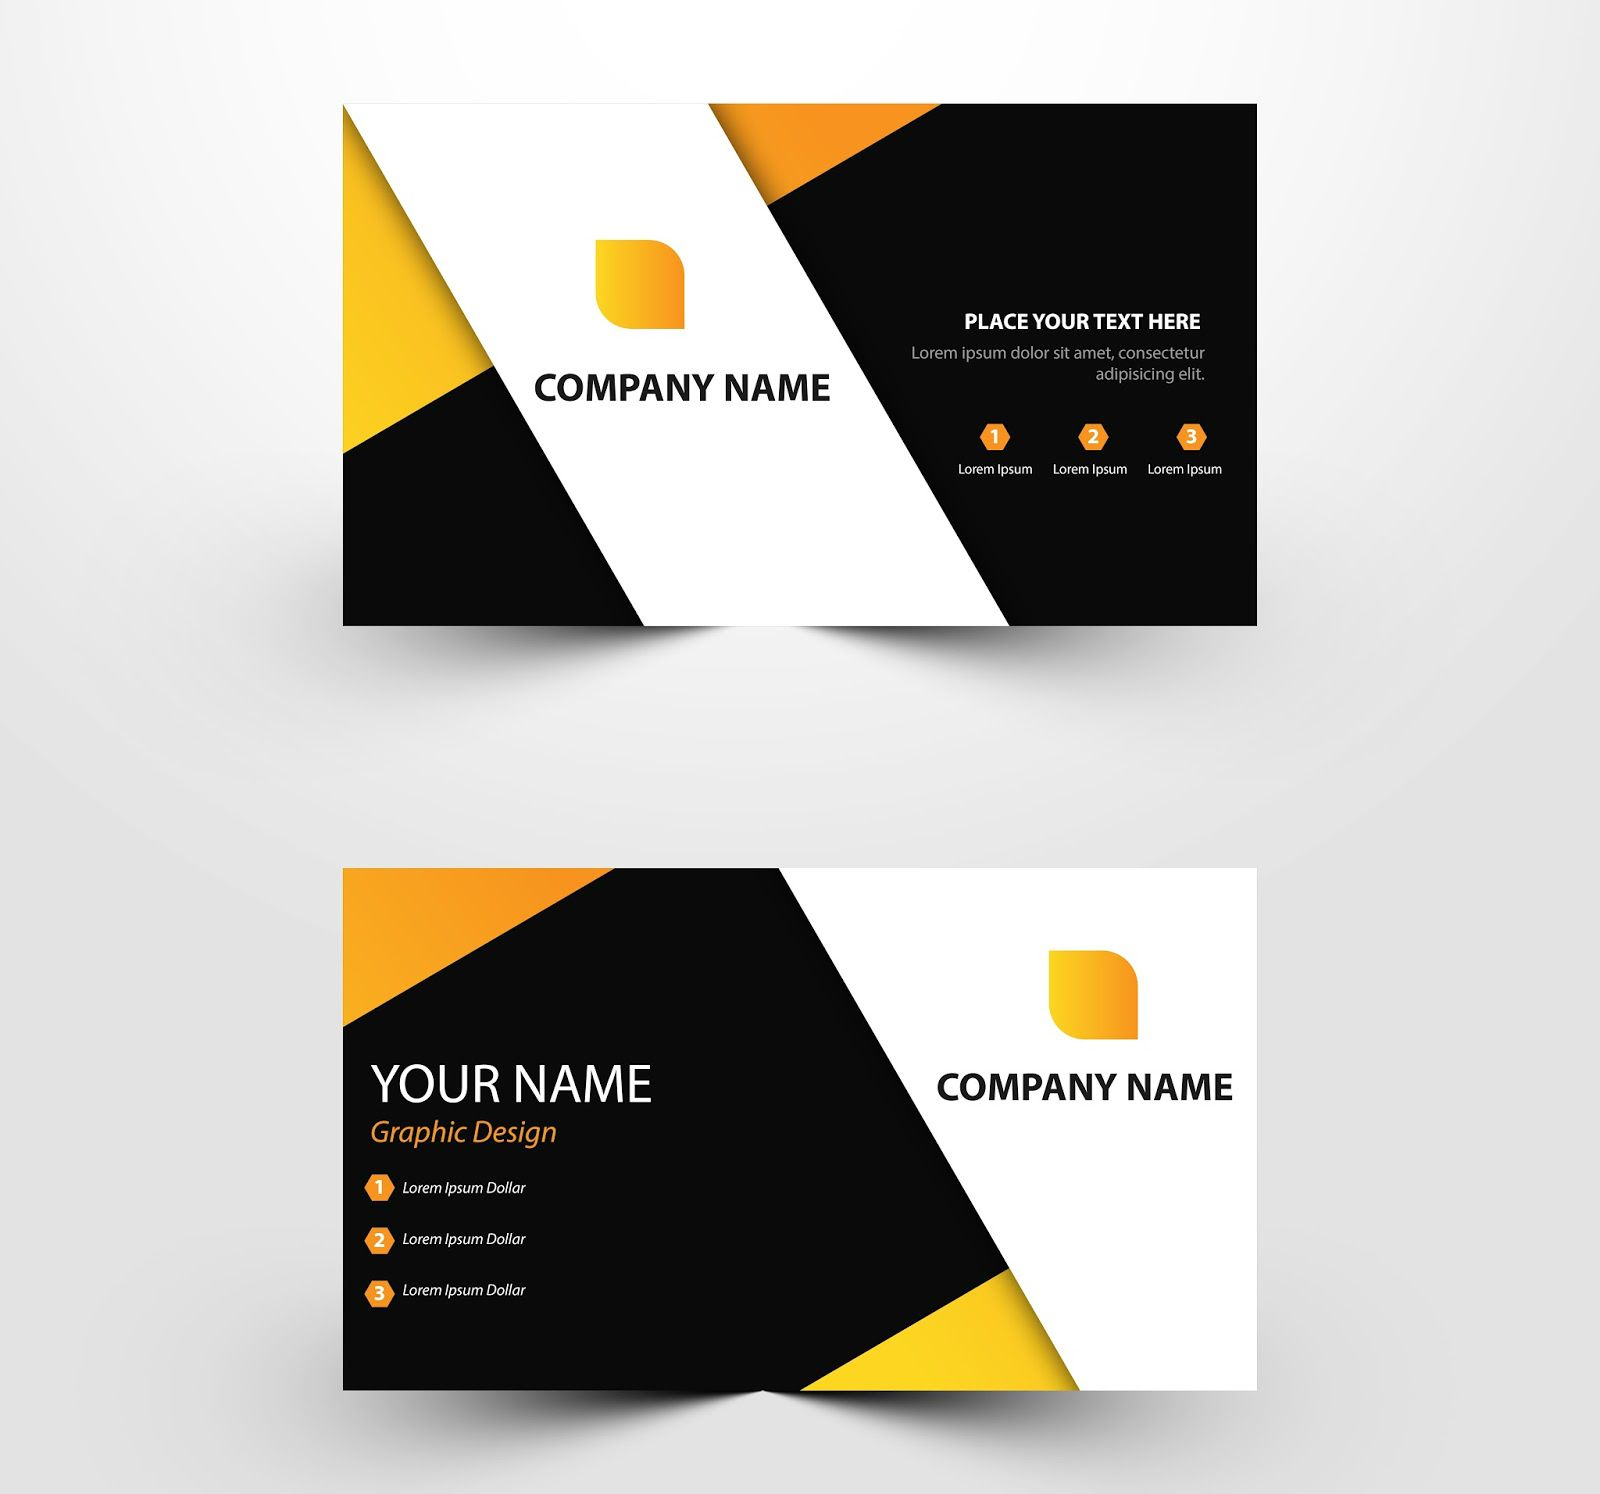 009 Fearsome Download Busines Card Template Concept  Free For Illustrator Visiting Layout Word 2010Full